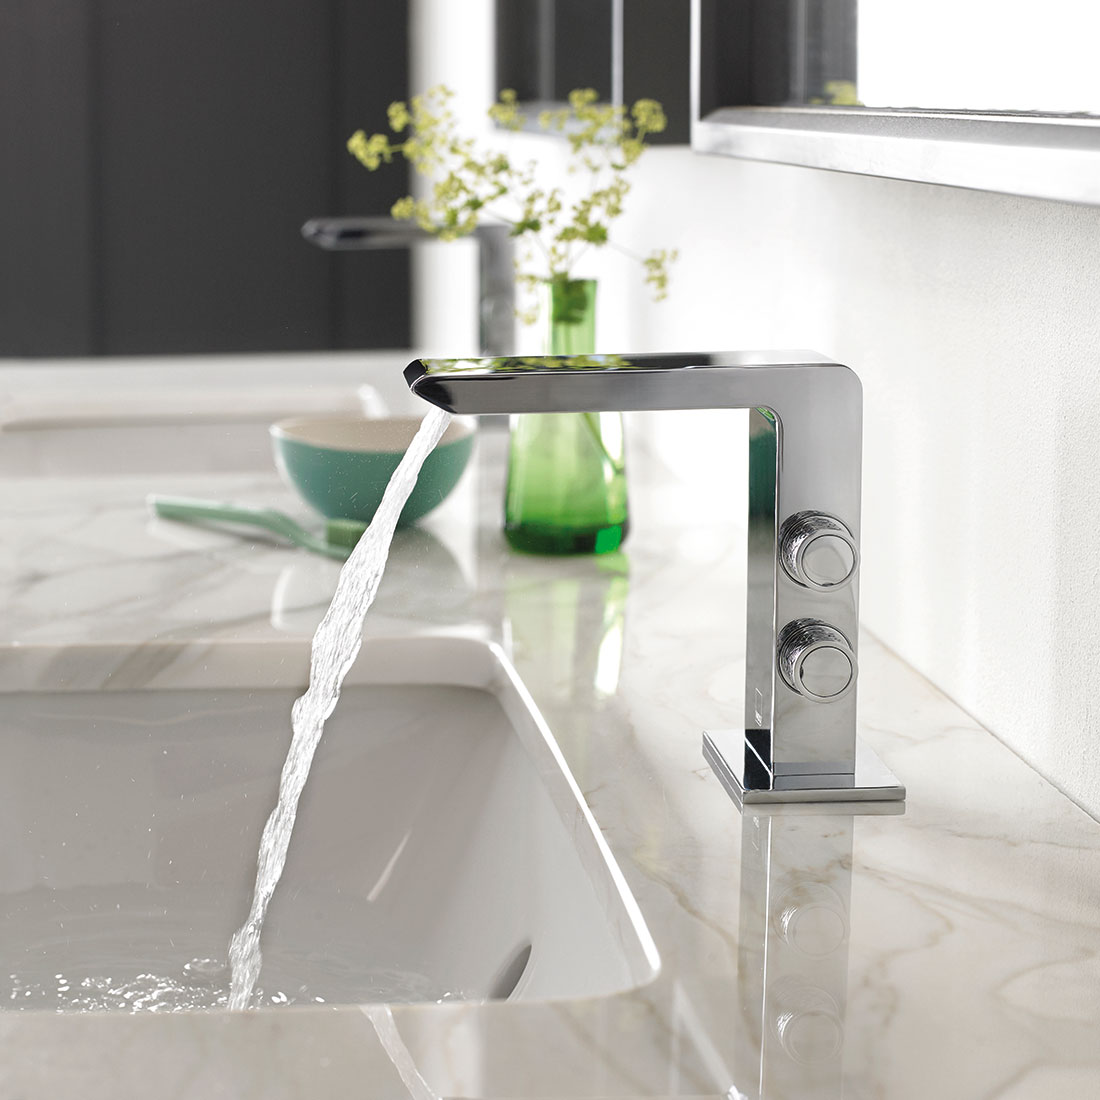 Omika Bathroom Tap Collections From £199.50